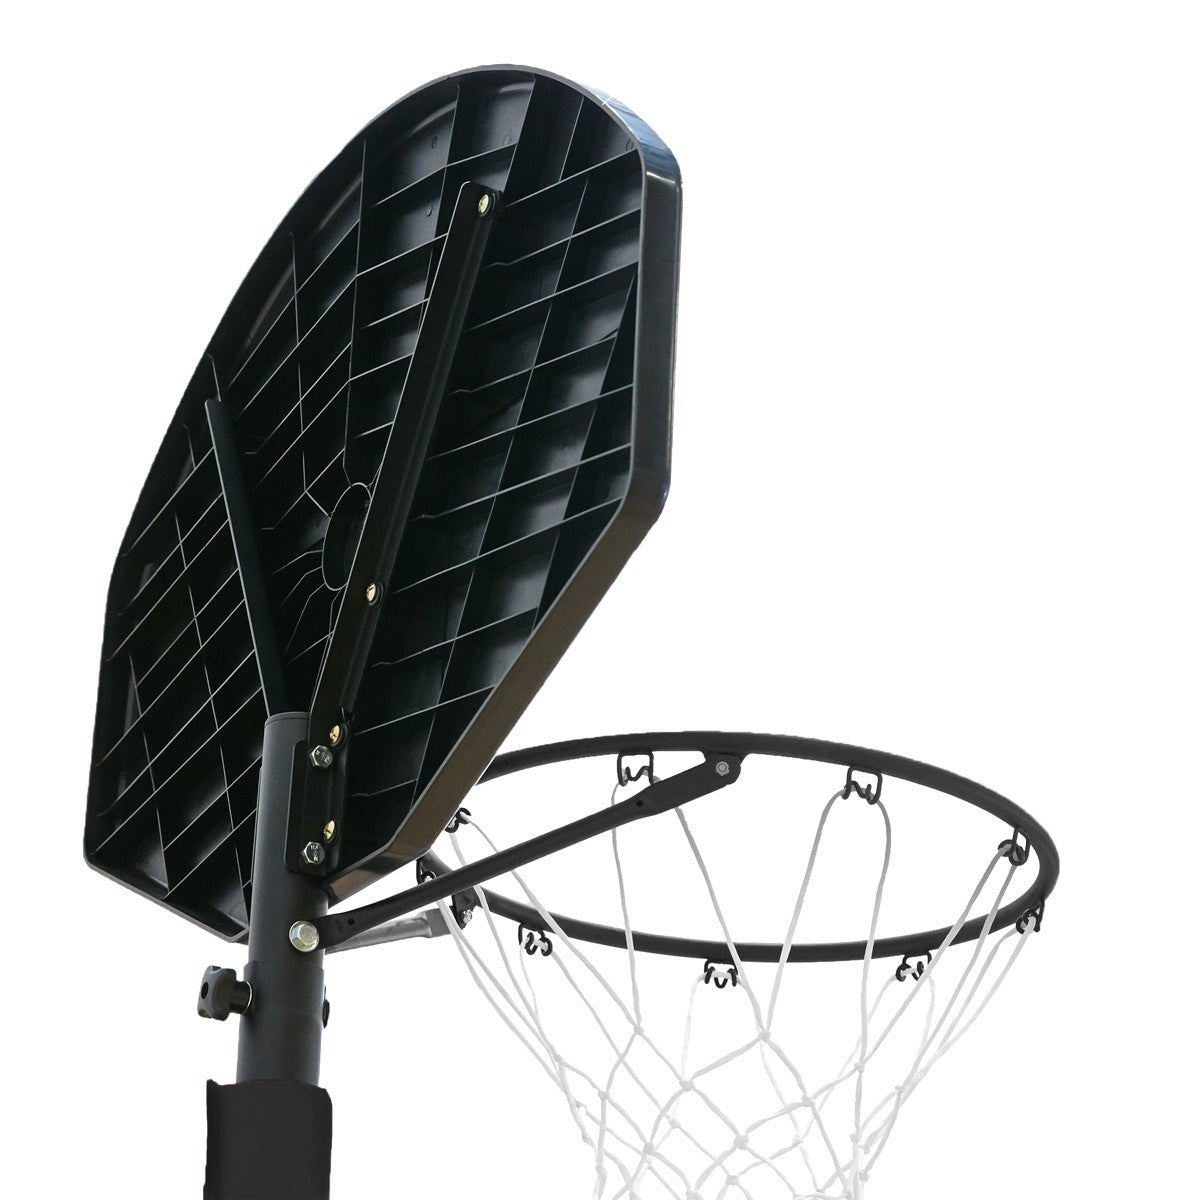 NET1 Junior Xplode Portable Basketball System - Black/Brown